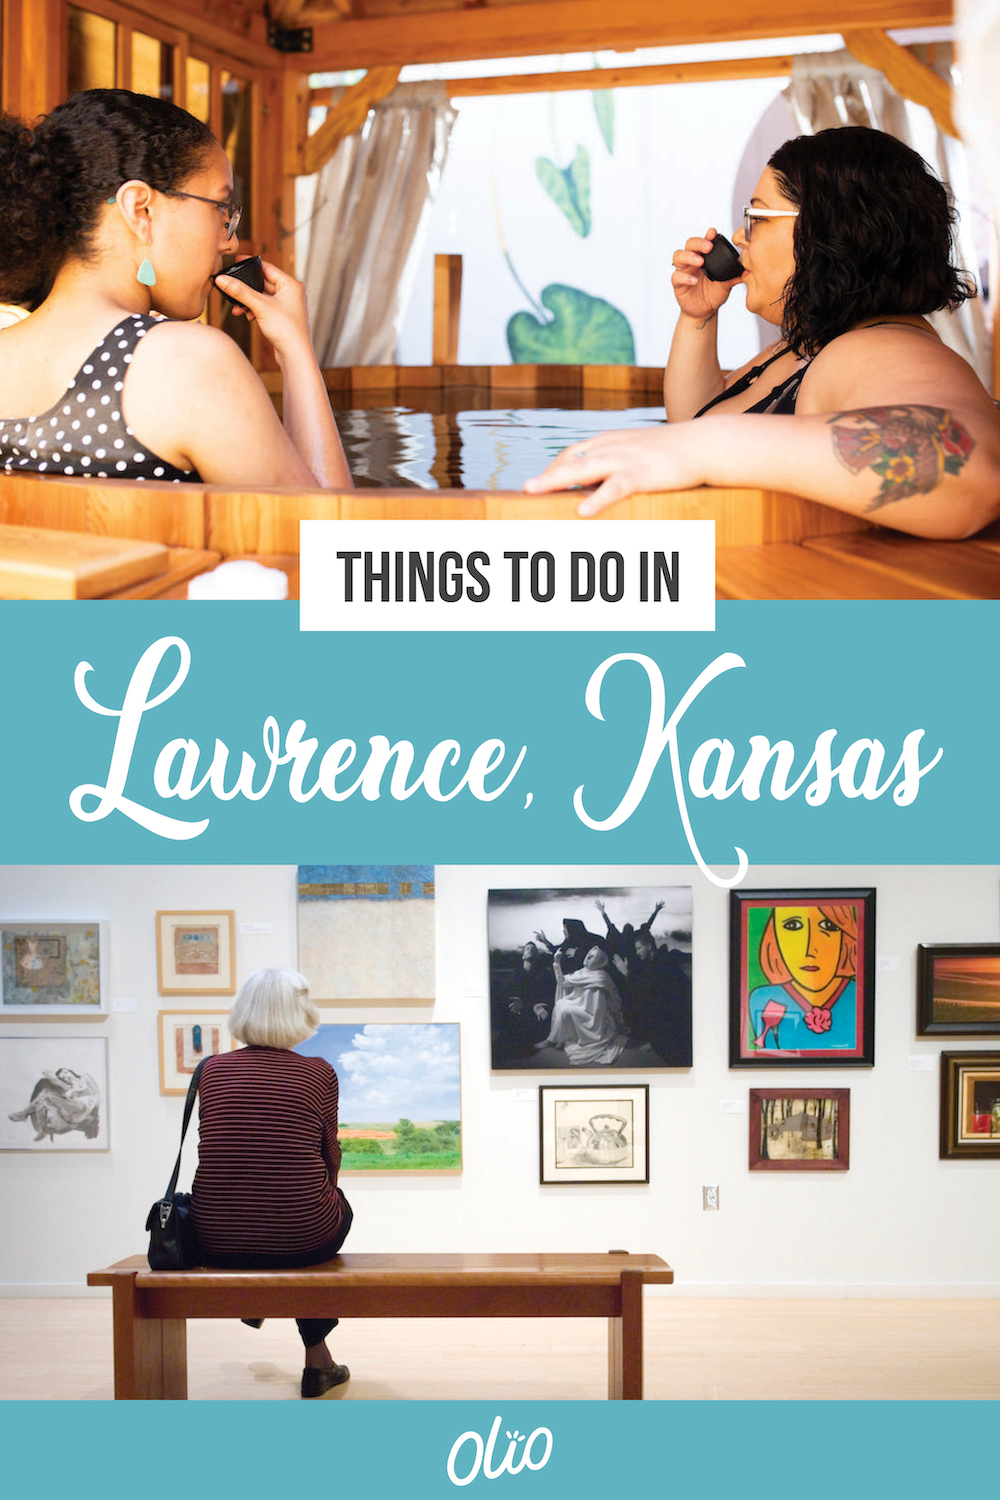 From incredible eateries and history-making breweries to a vibrant arts and culture scene, there are lots of reasons to fall in love with Lawrence, Kansas. Plan a weekend getaway to learn why Lawrence is more than your typical college town. #Kansas #Lawrence #Midwest #MidwestTravel